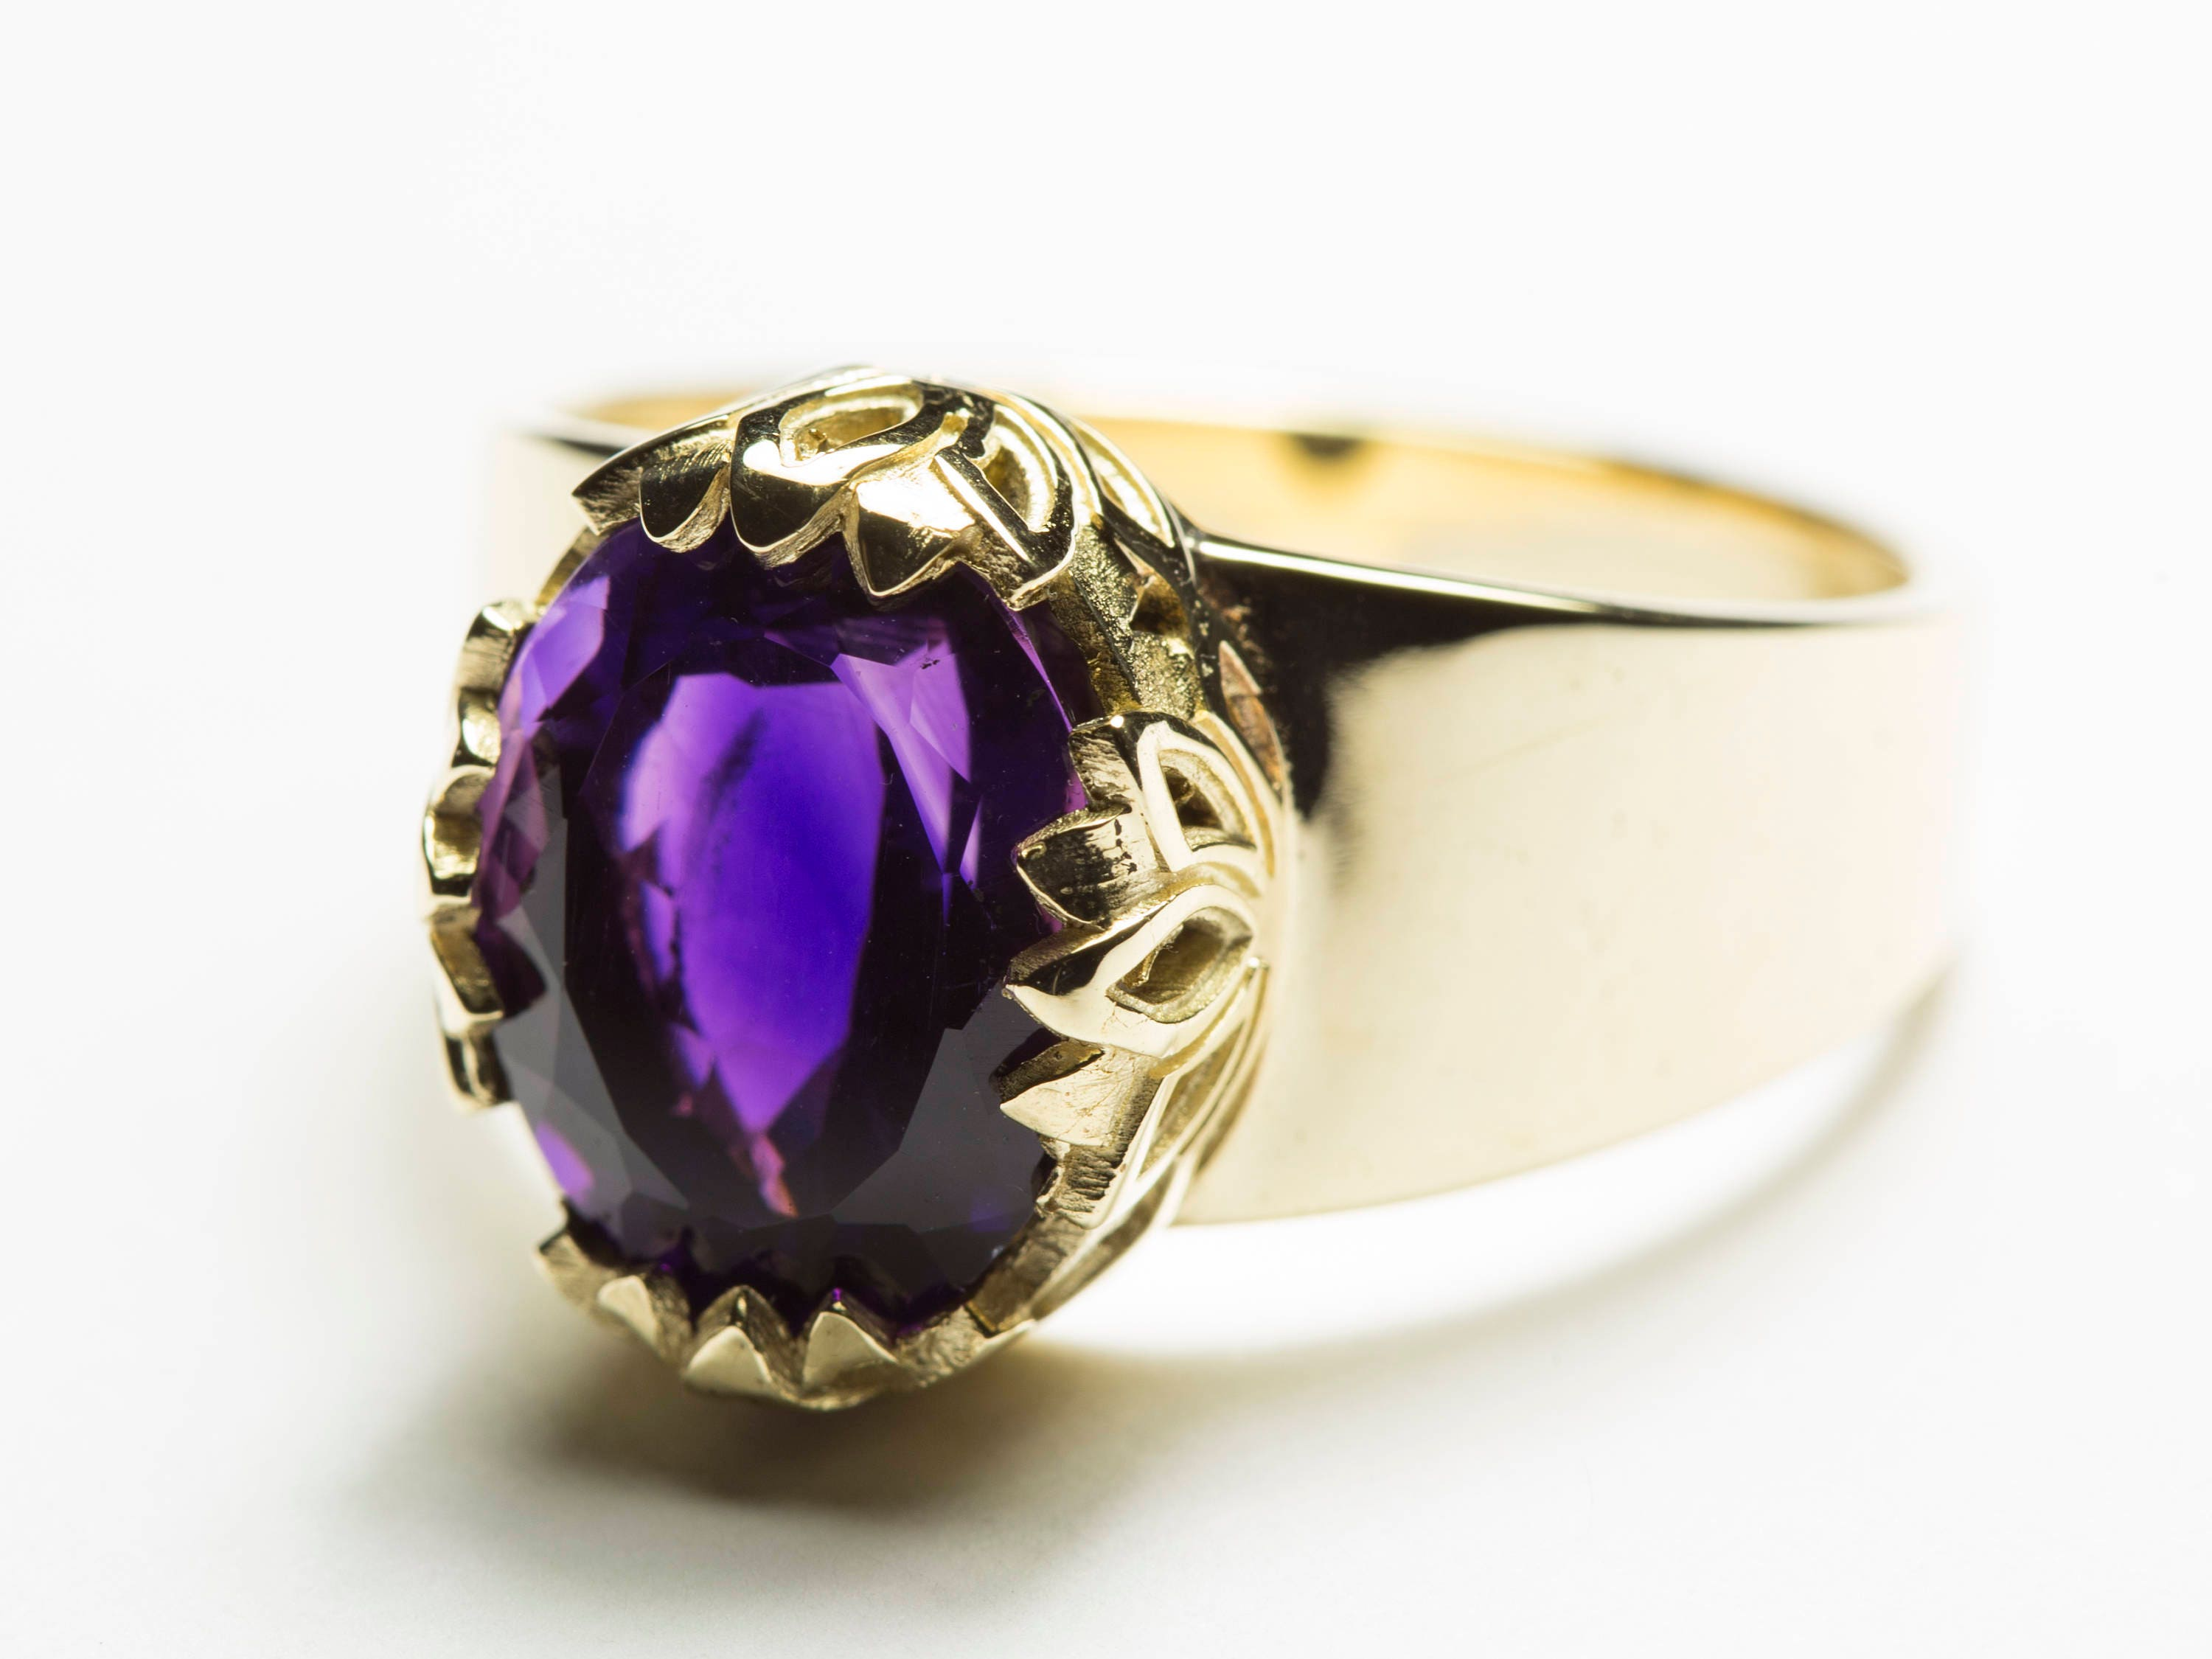 art siberian org amethyst amethist and diamond deco j ring jewelry rings engagement at id cluster